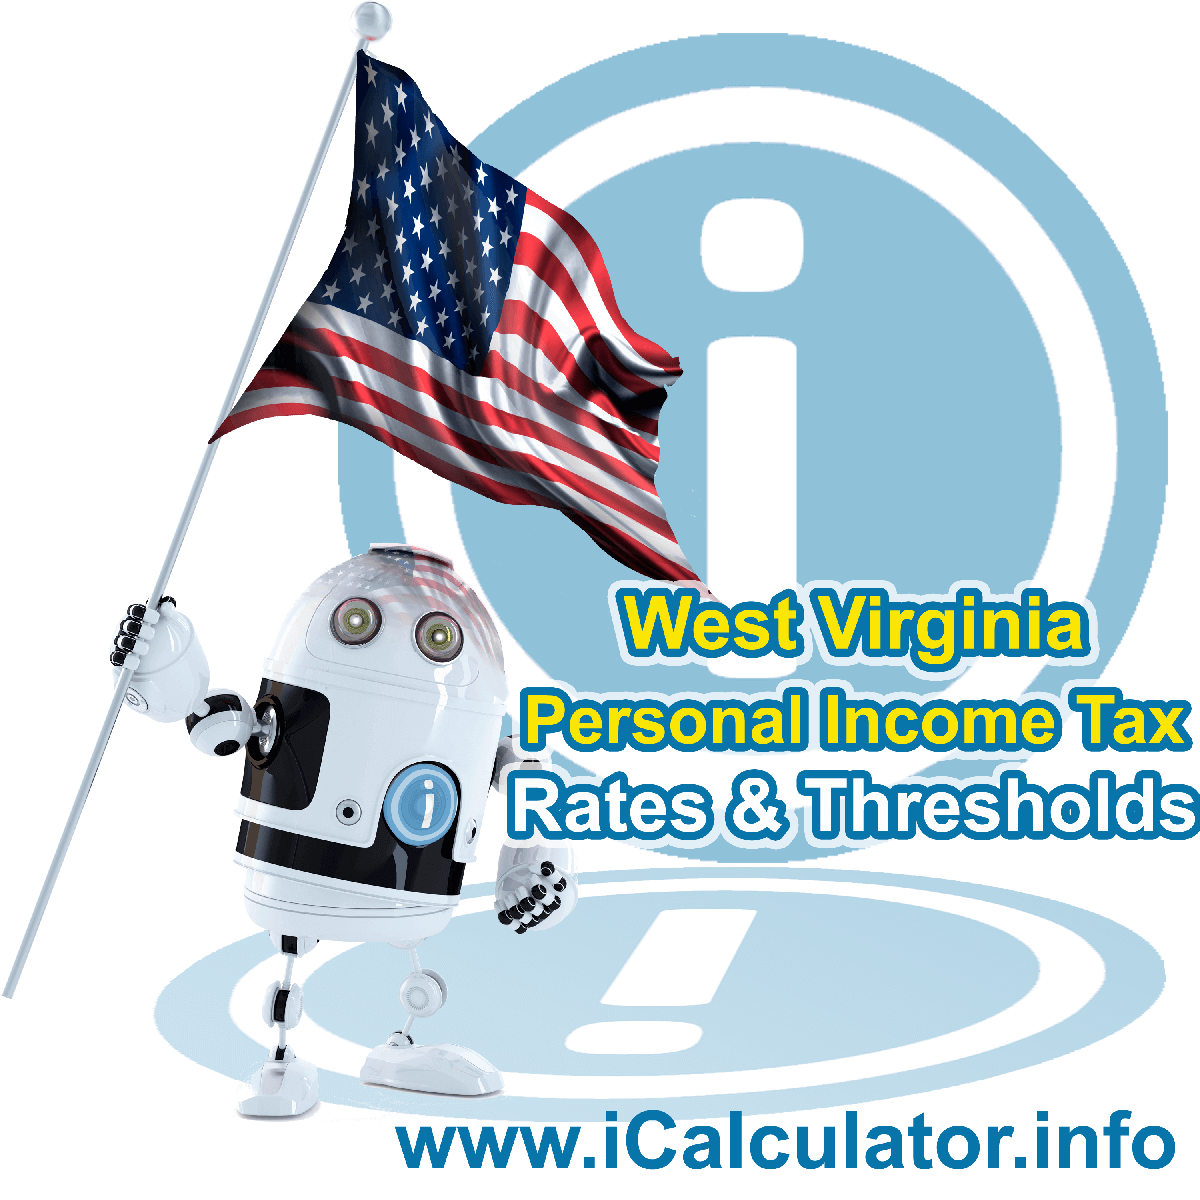 West Virginia State Tax Tables 2019. This image displays details of the West Virginia State Tax Tables for the 2019 tax return year which is provided in support of the 2019 US Tax Calculator